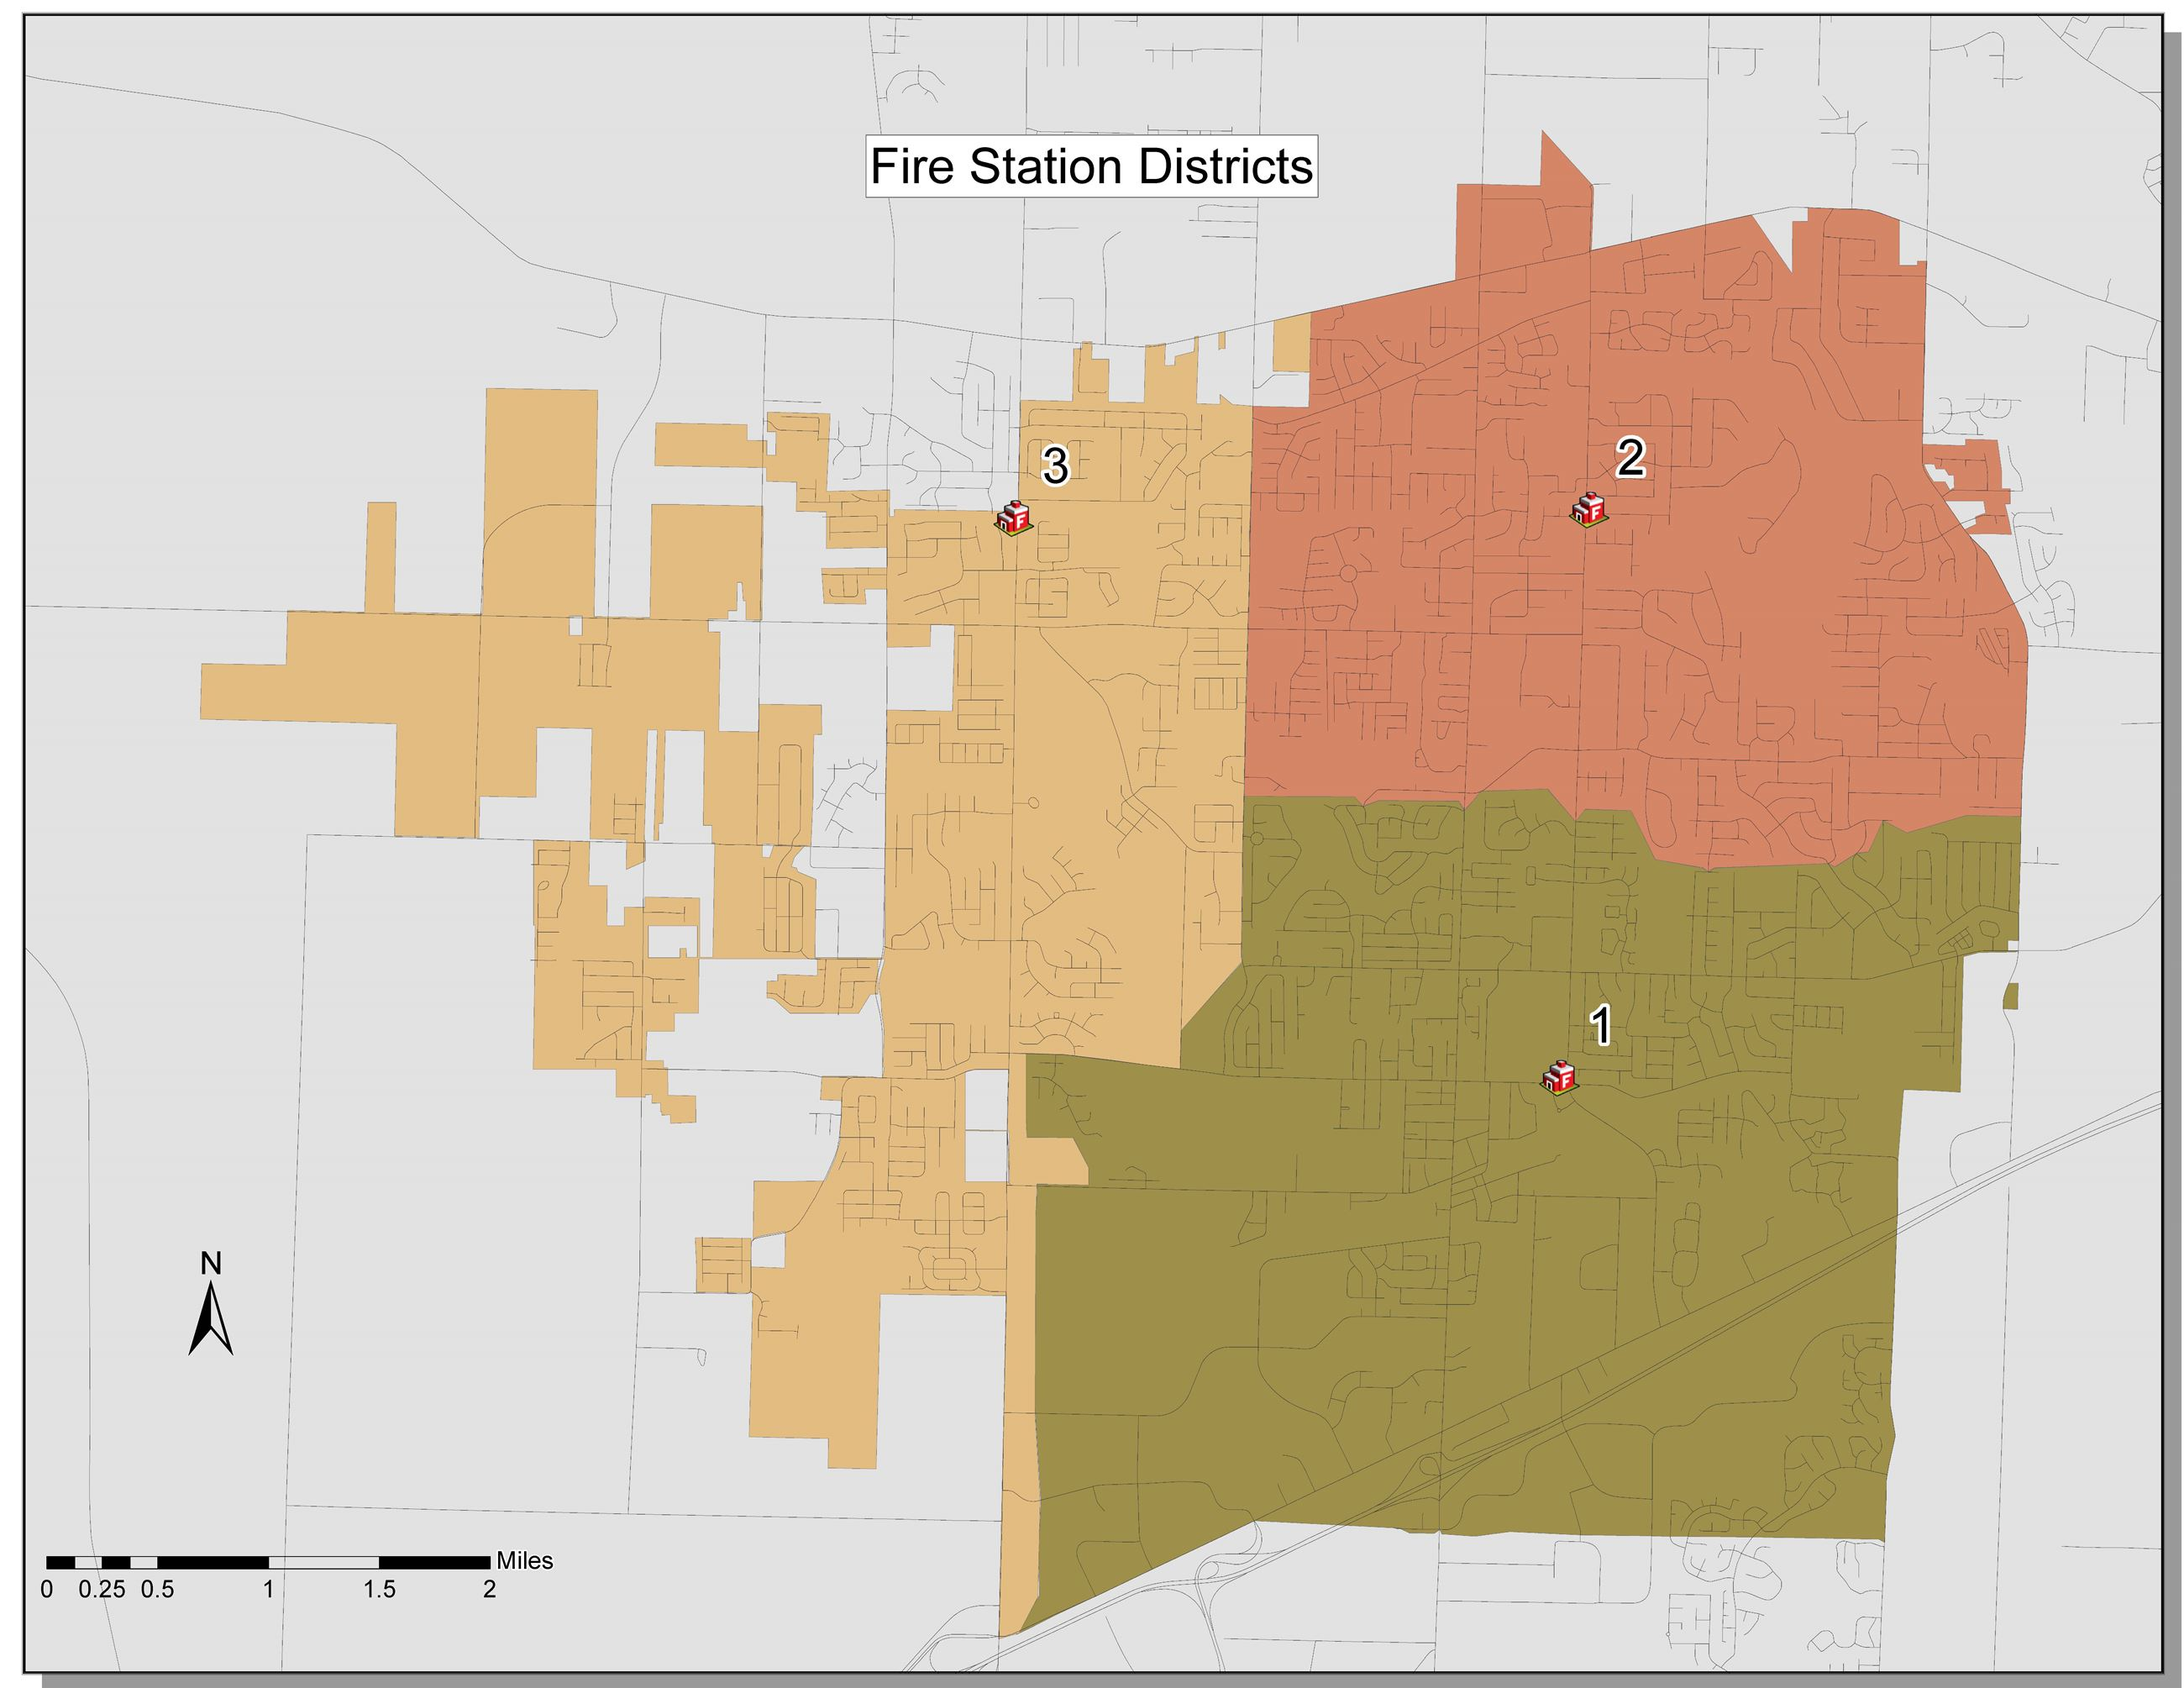 FireStation Districts